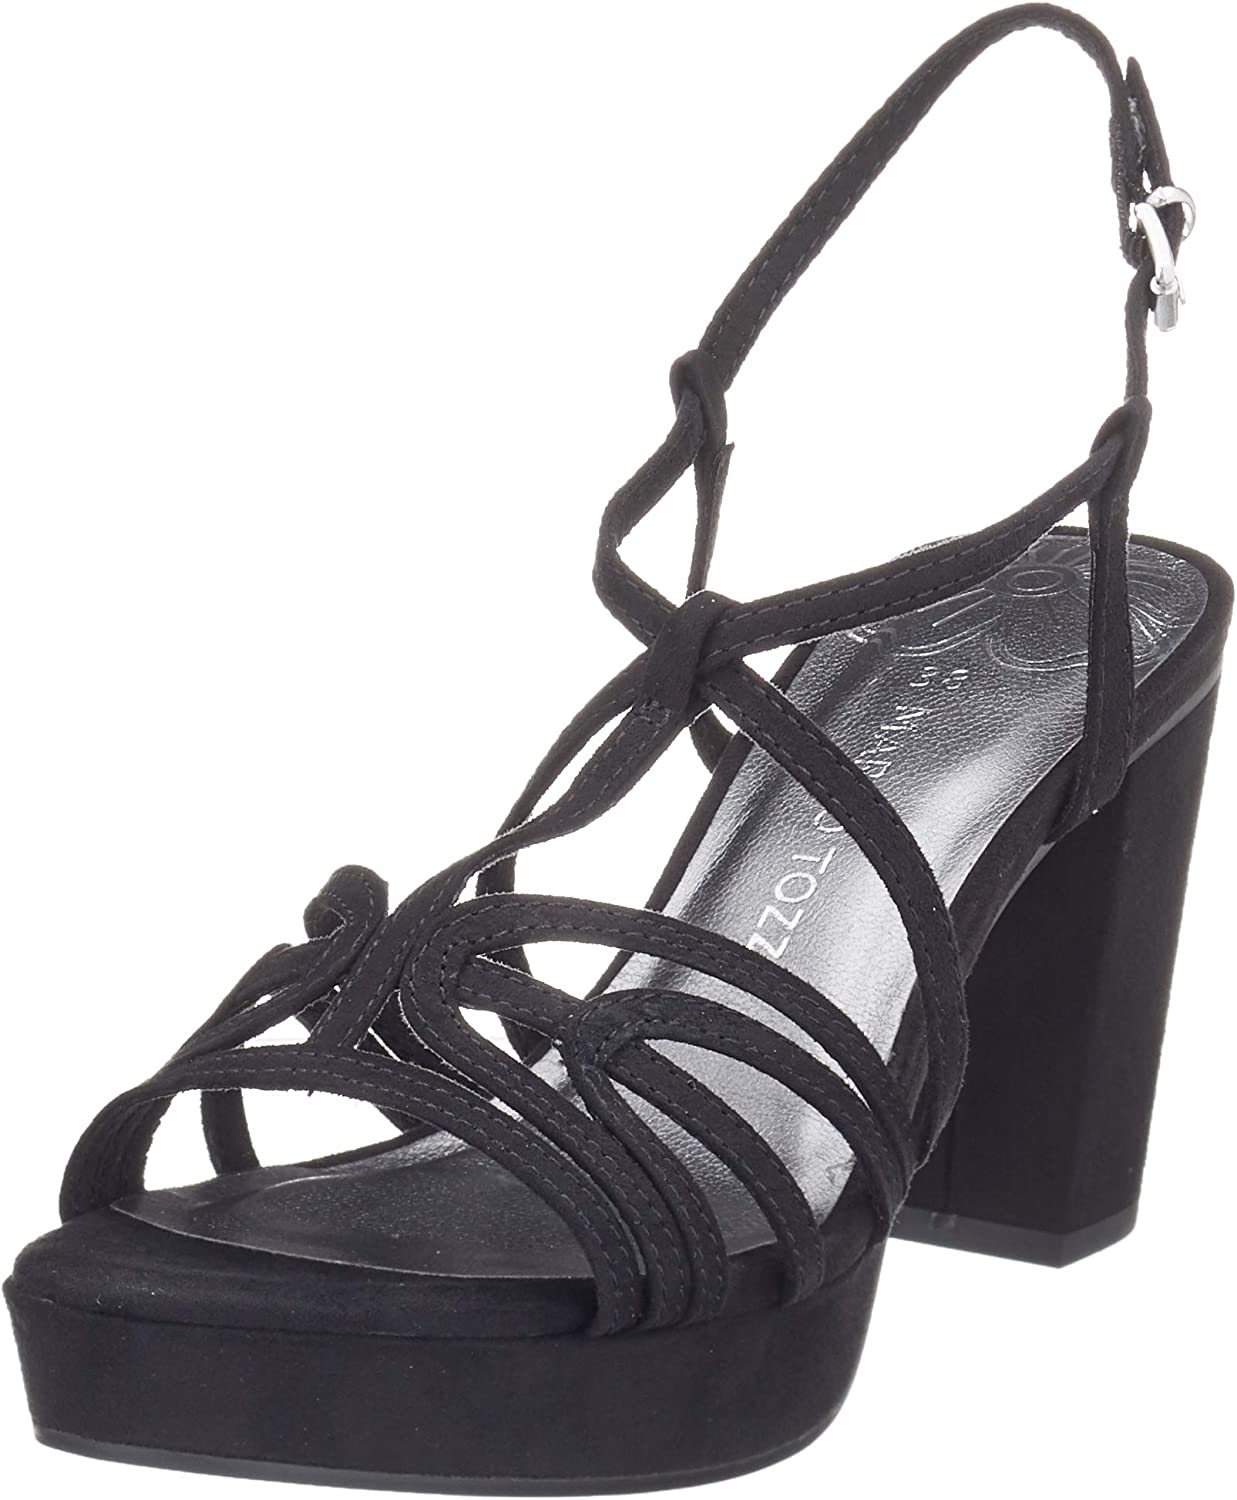 MARCO TOZZI Women's 2-2-28332-24 Ankle Blac Strap Sandals Popular brand in the world Black Phoenix Mall